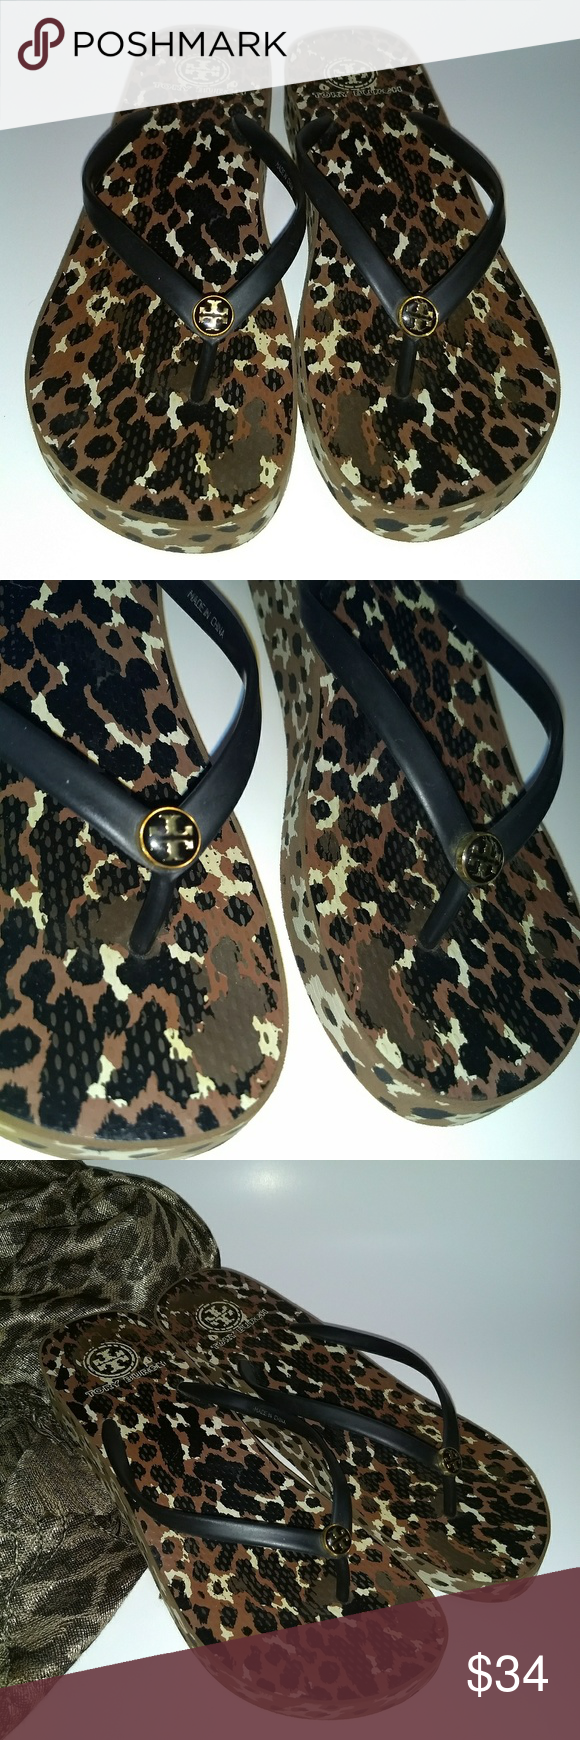 c7f3e88be2e481 Tory Burch Wedge Flip Flops Tory Burch wedge leopard print flip flops.  Color  Black Brown. Women Size 9 1 2. These is some wear on leopard print  on sole of ...